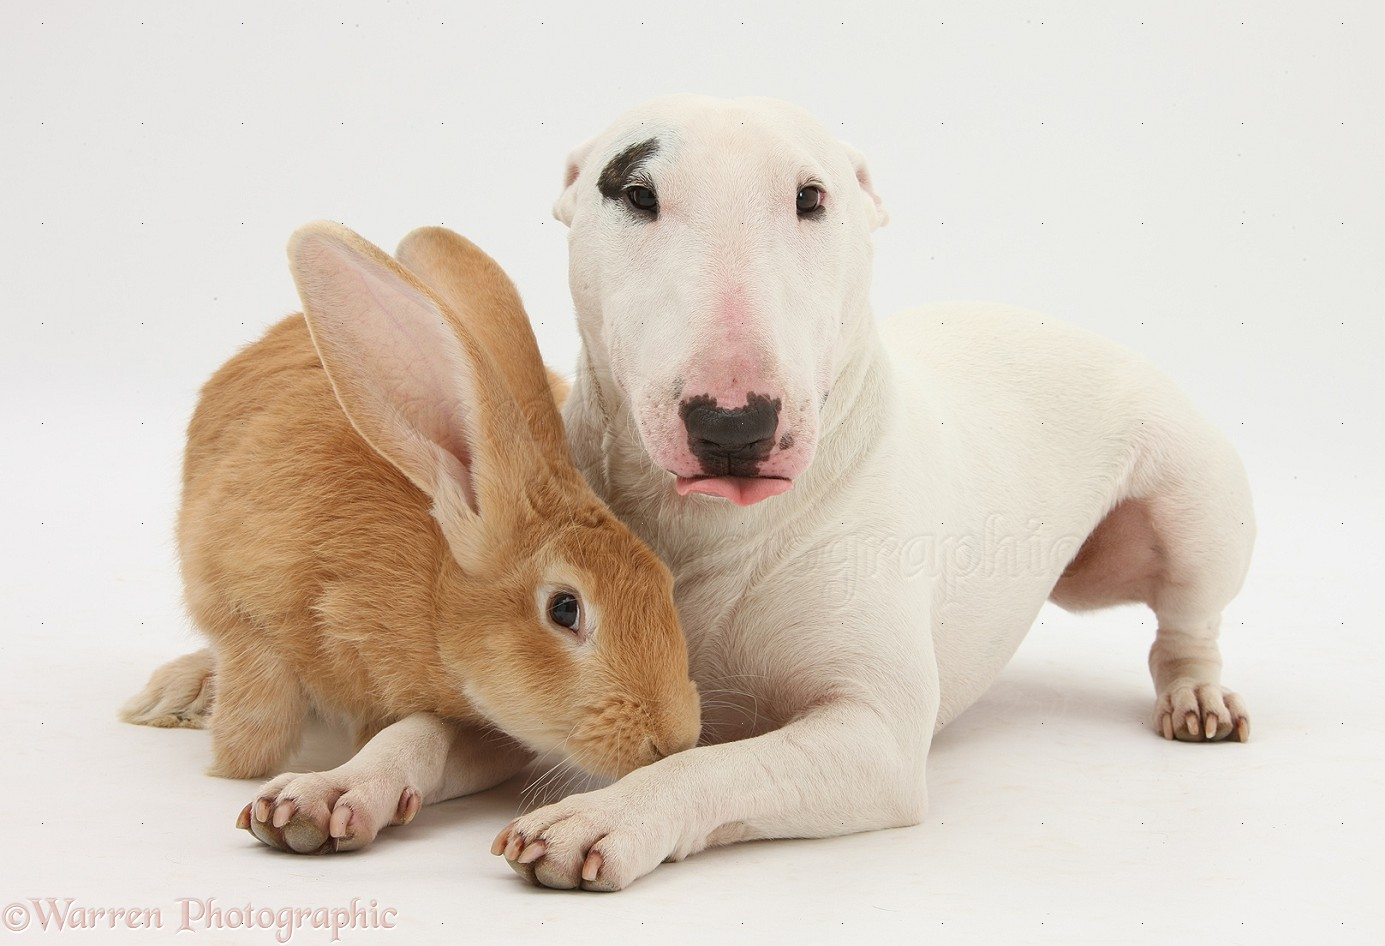 ... Flemish Giant rabbit, Toffee , and Miniature Bull Terrier bitch, Noah